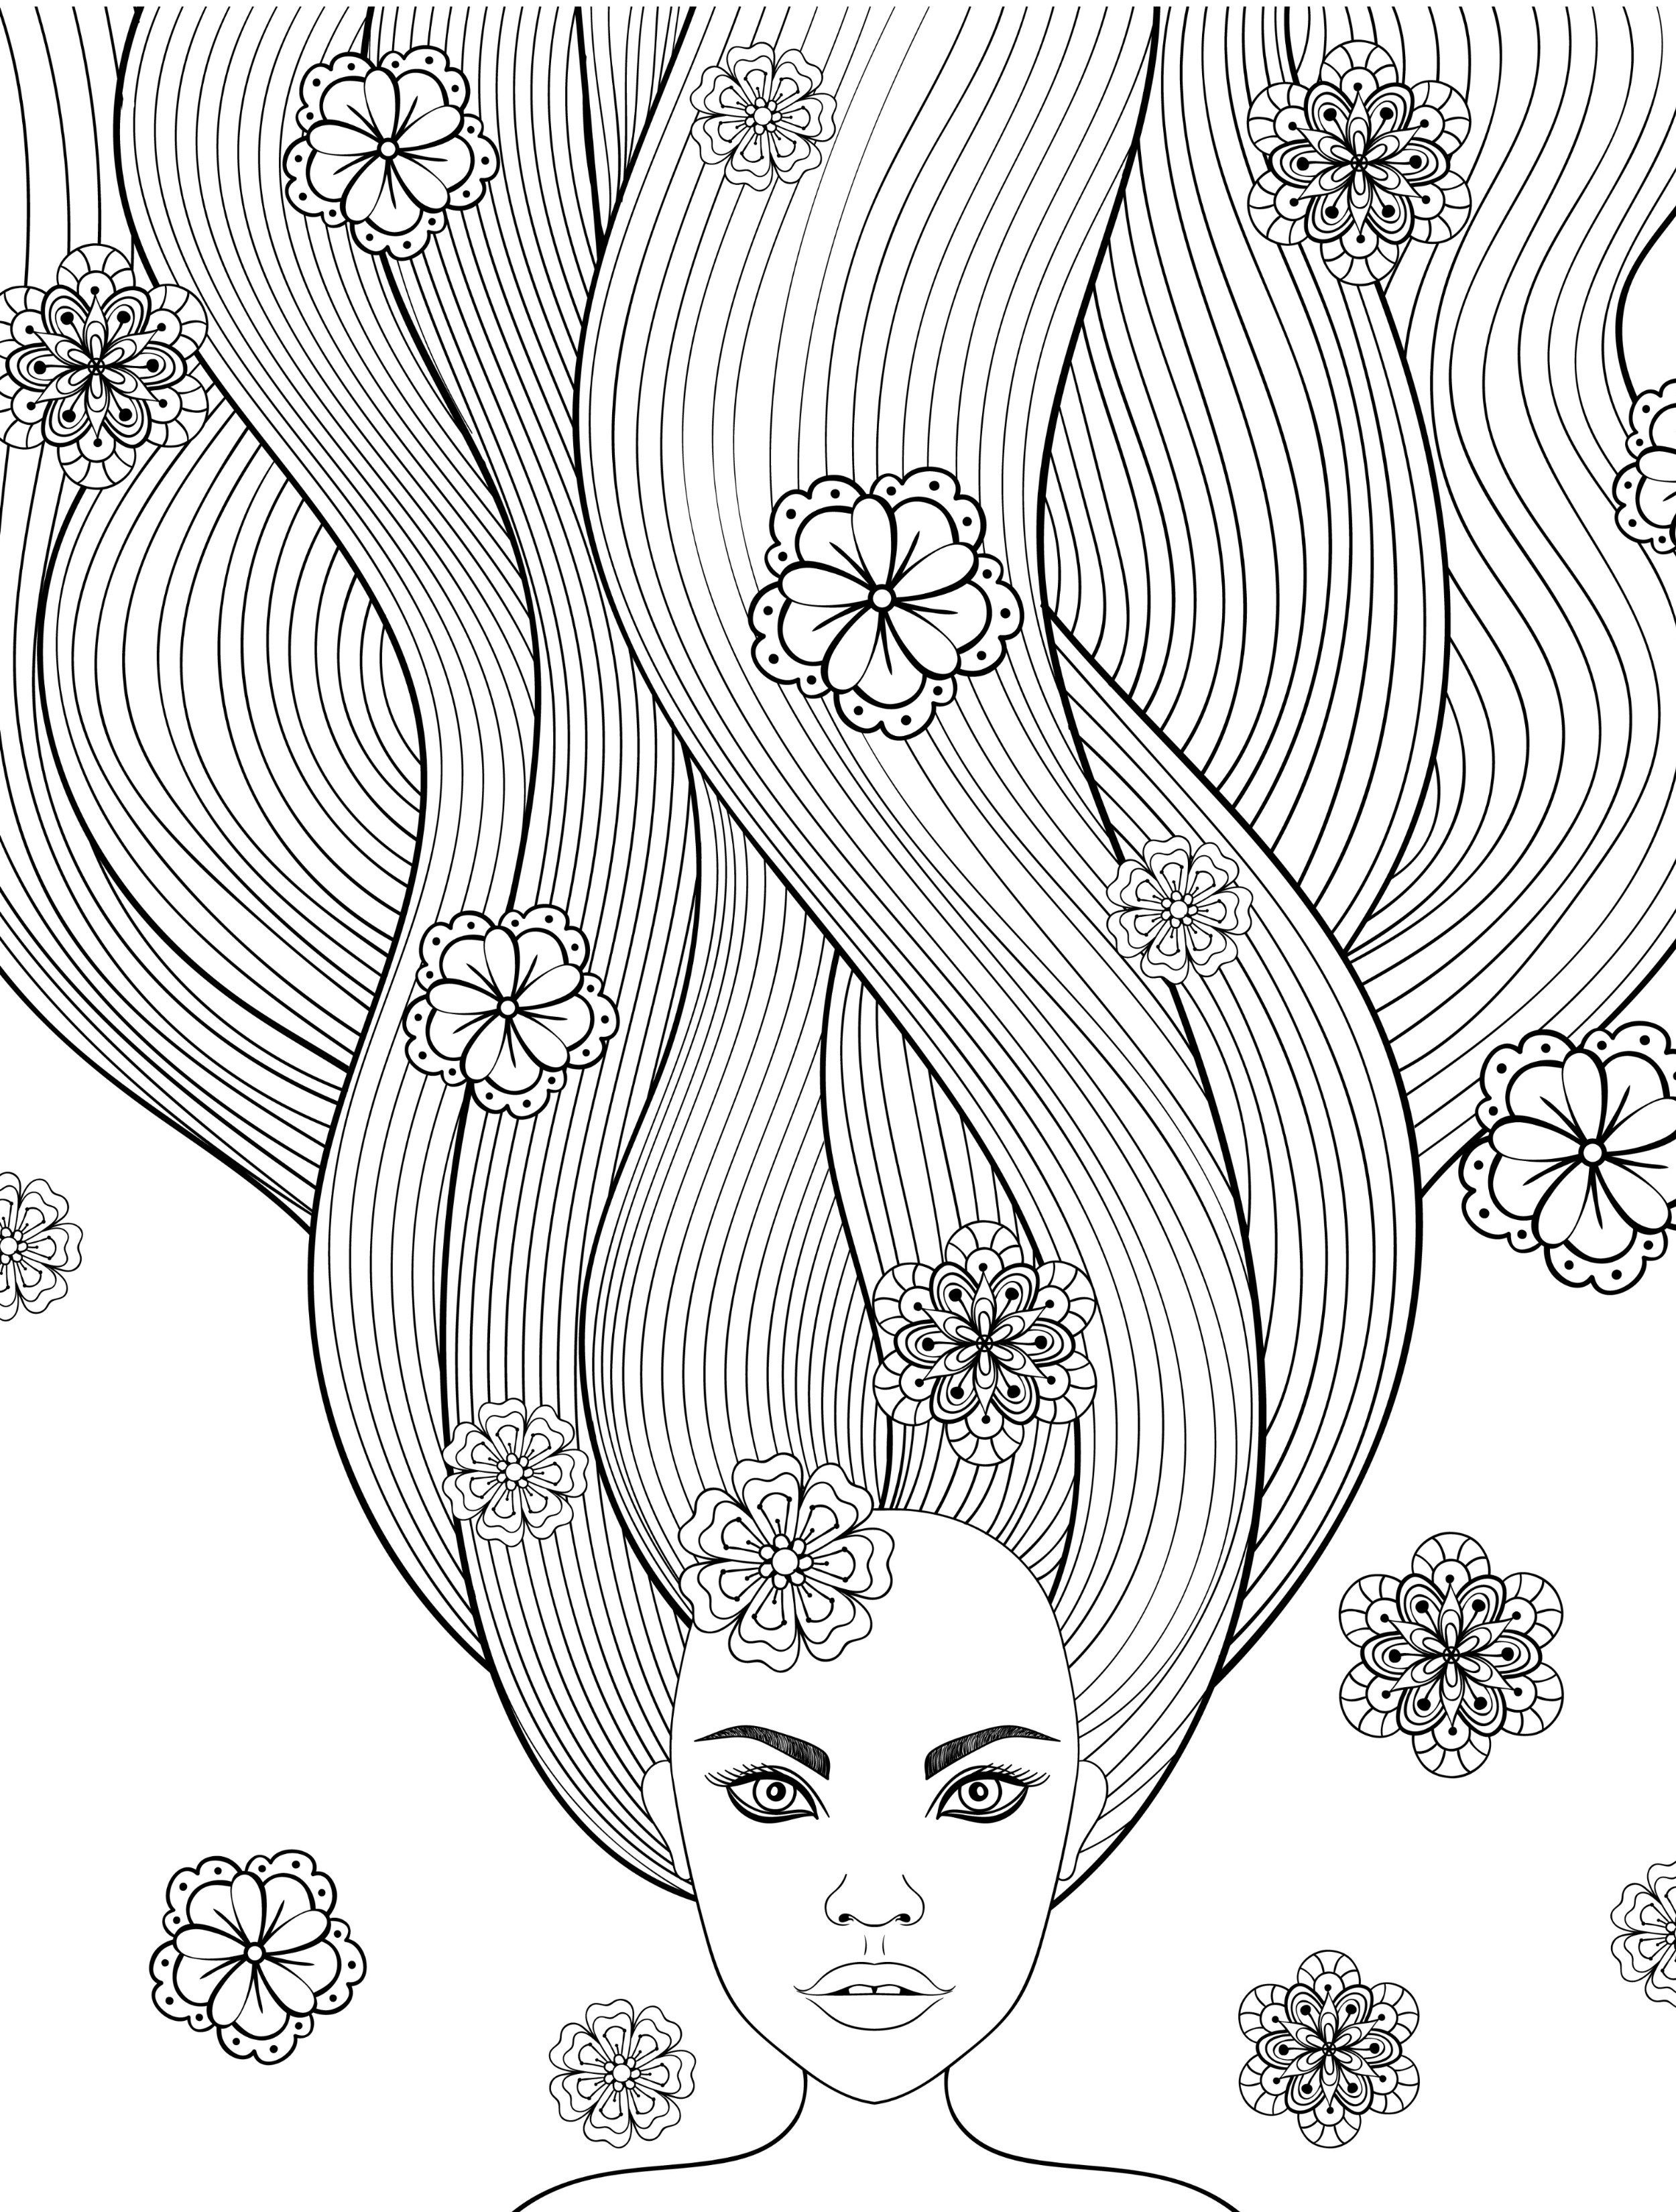 10 Crazy Hair Adult Coloring Pages Page 8 Of 12 Adult Coloring